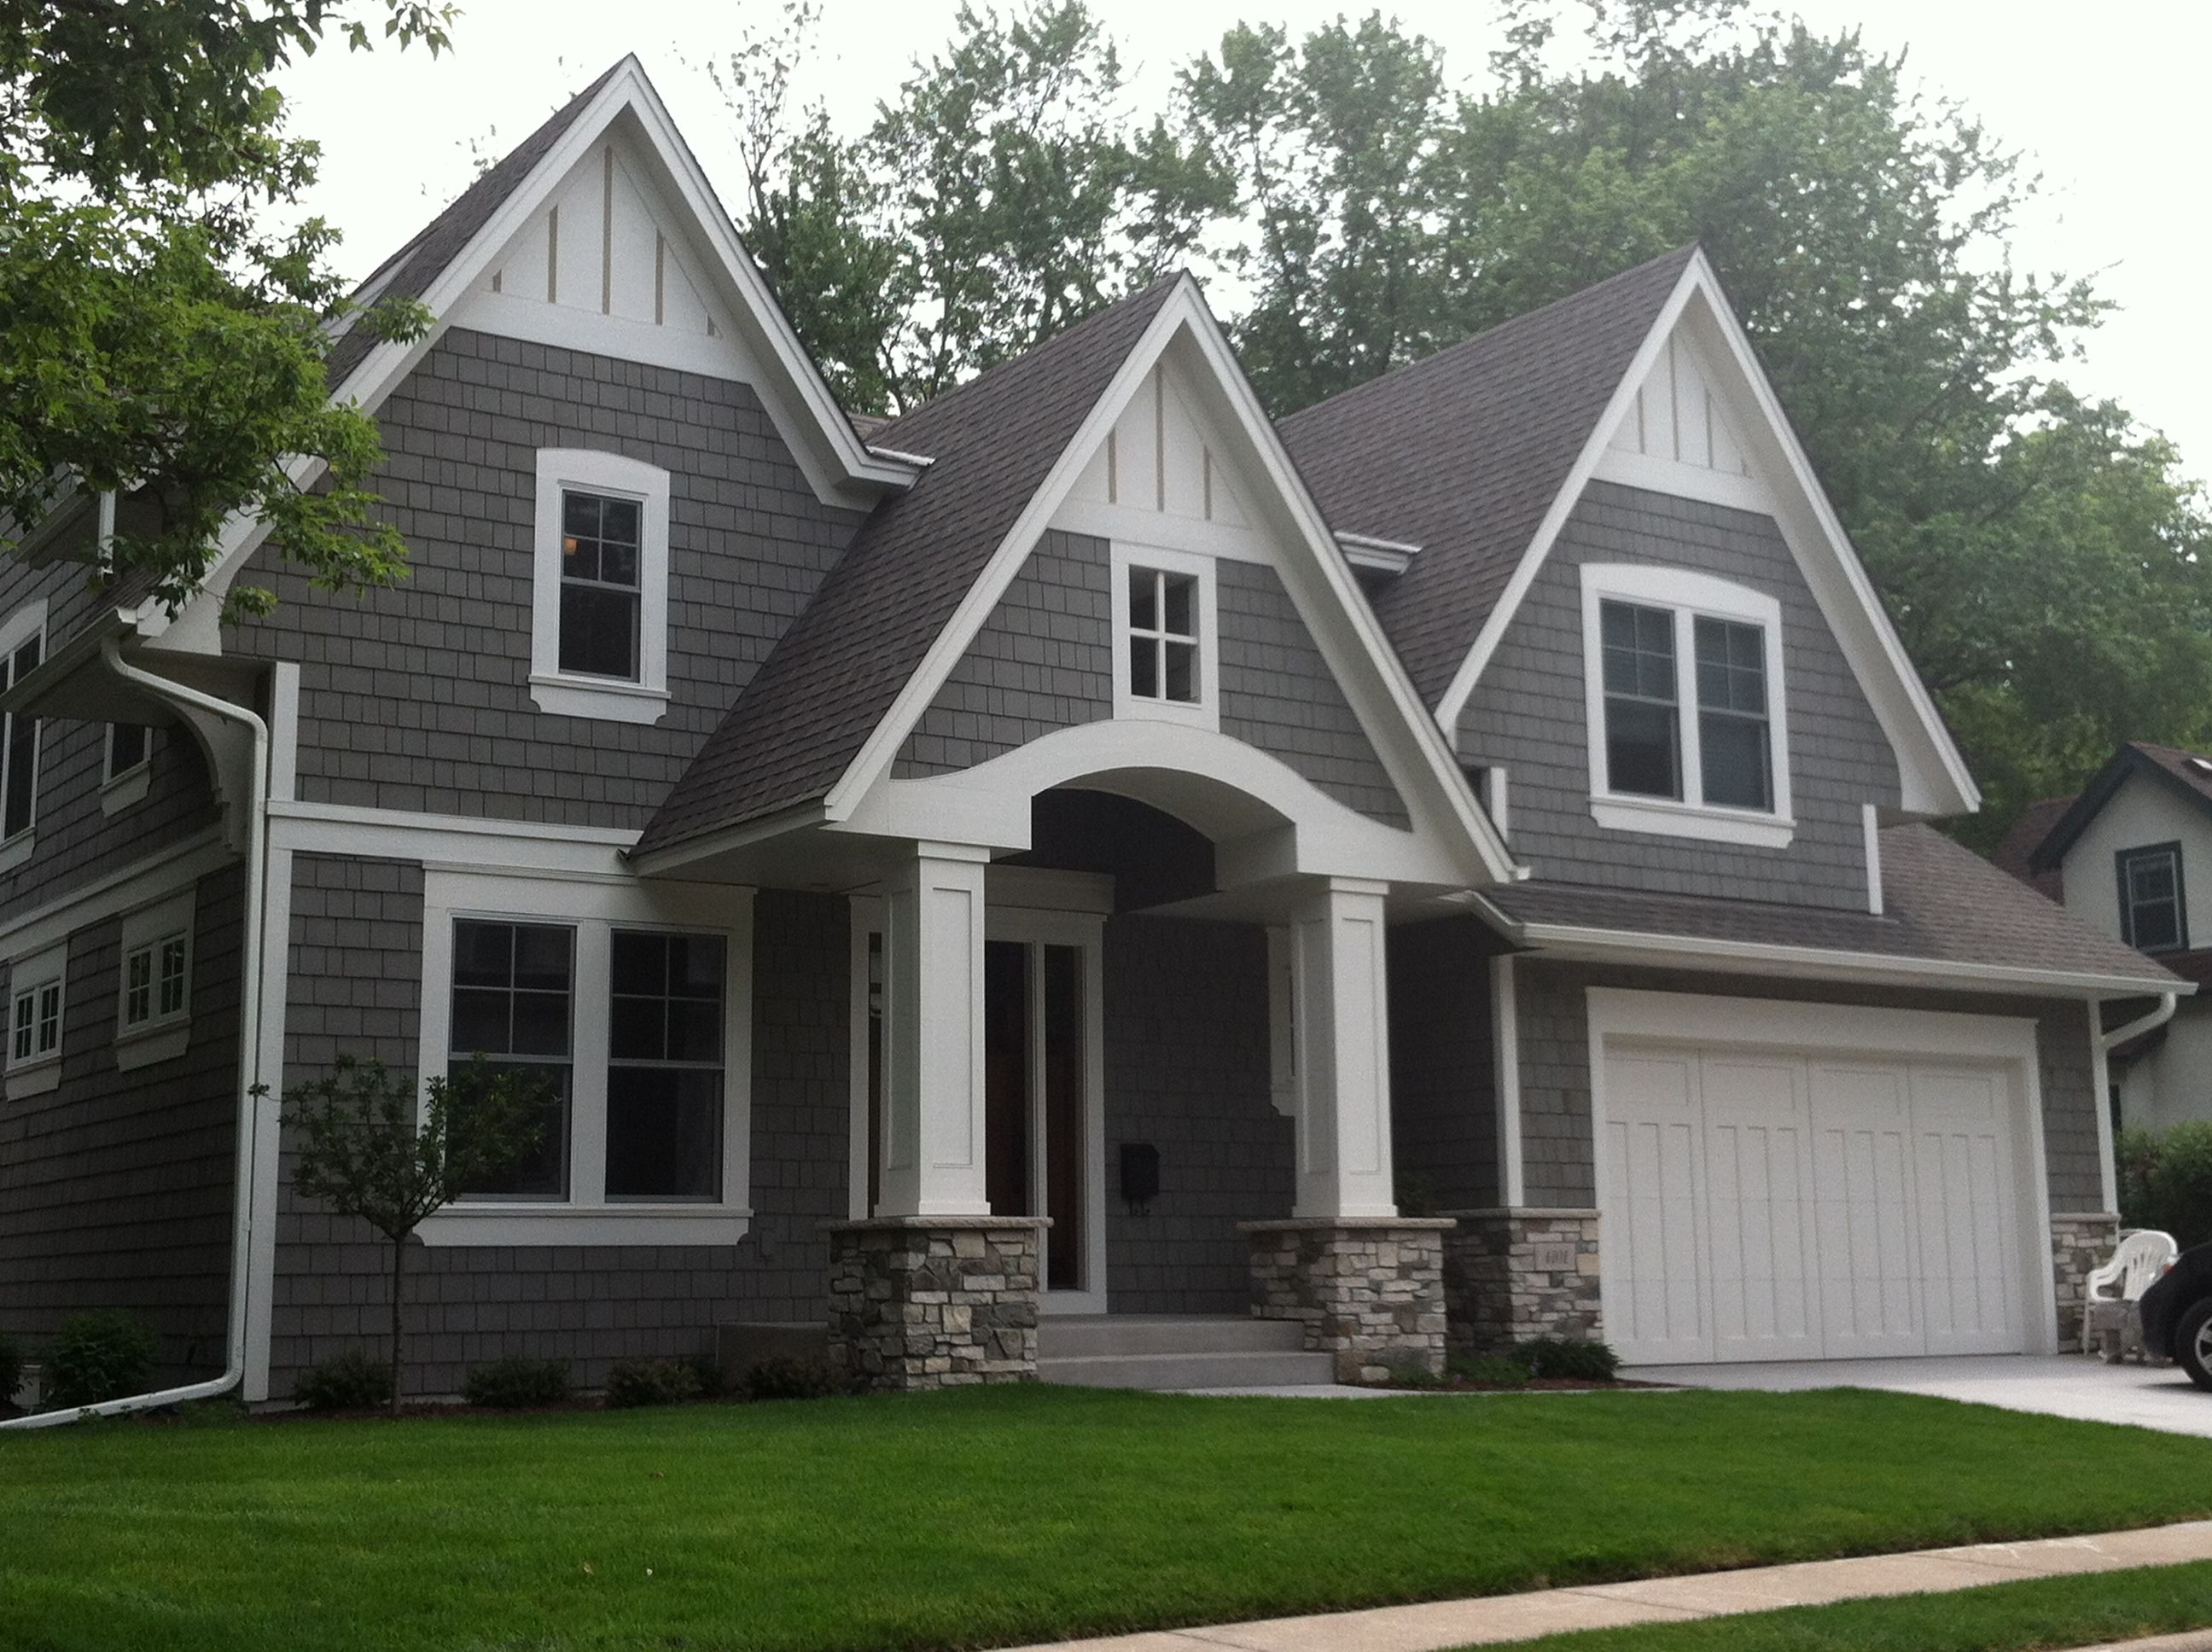 Exterior house color schemes barrier exteriors minnesota for Exterior house color ideas